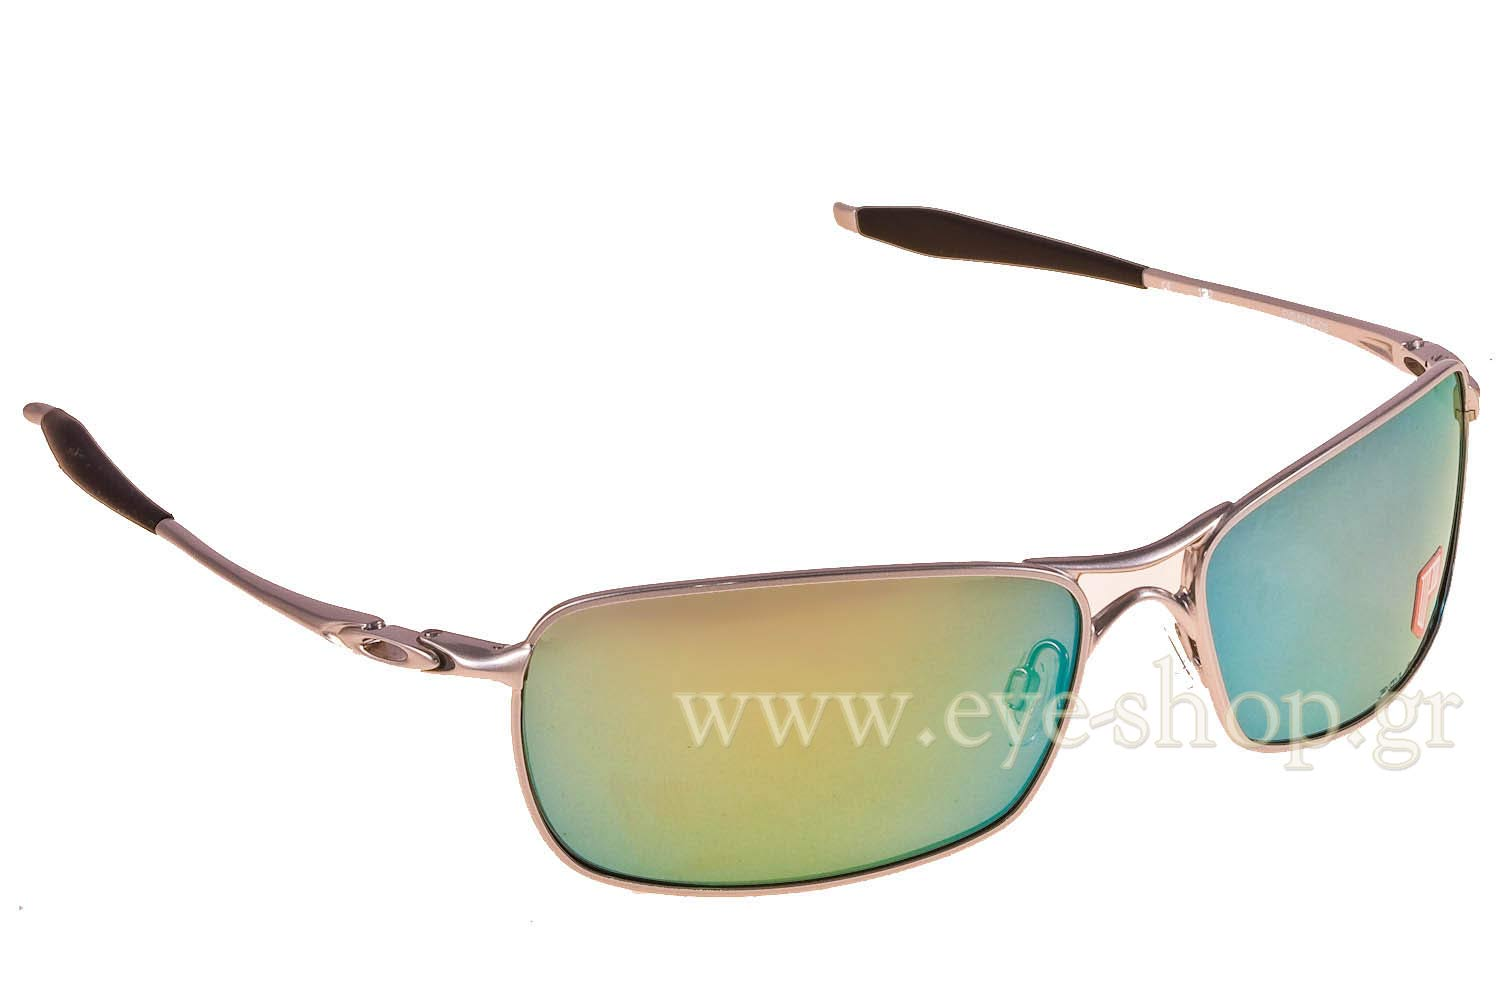 Oakley Crosshair 2.0 Polarized